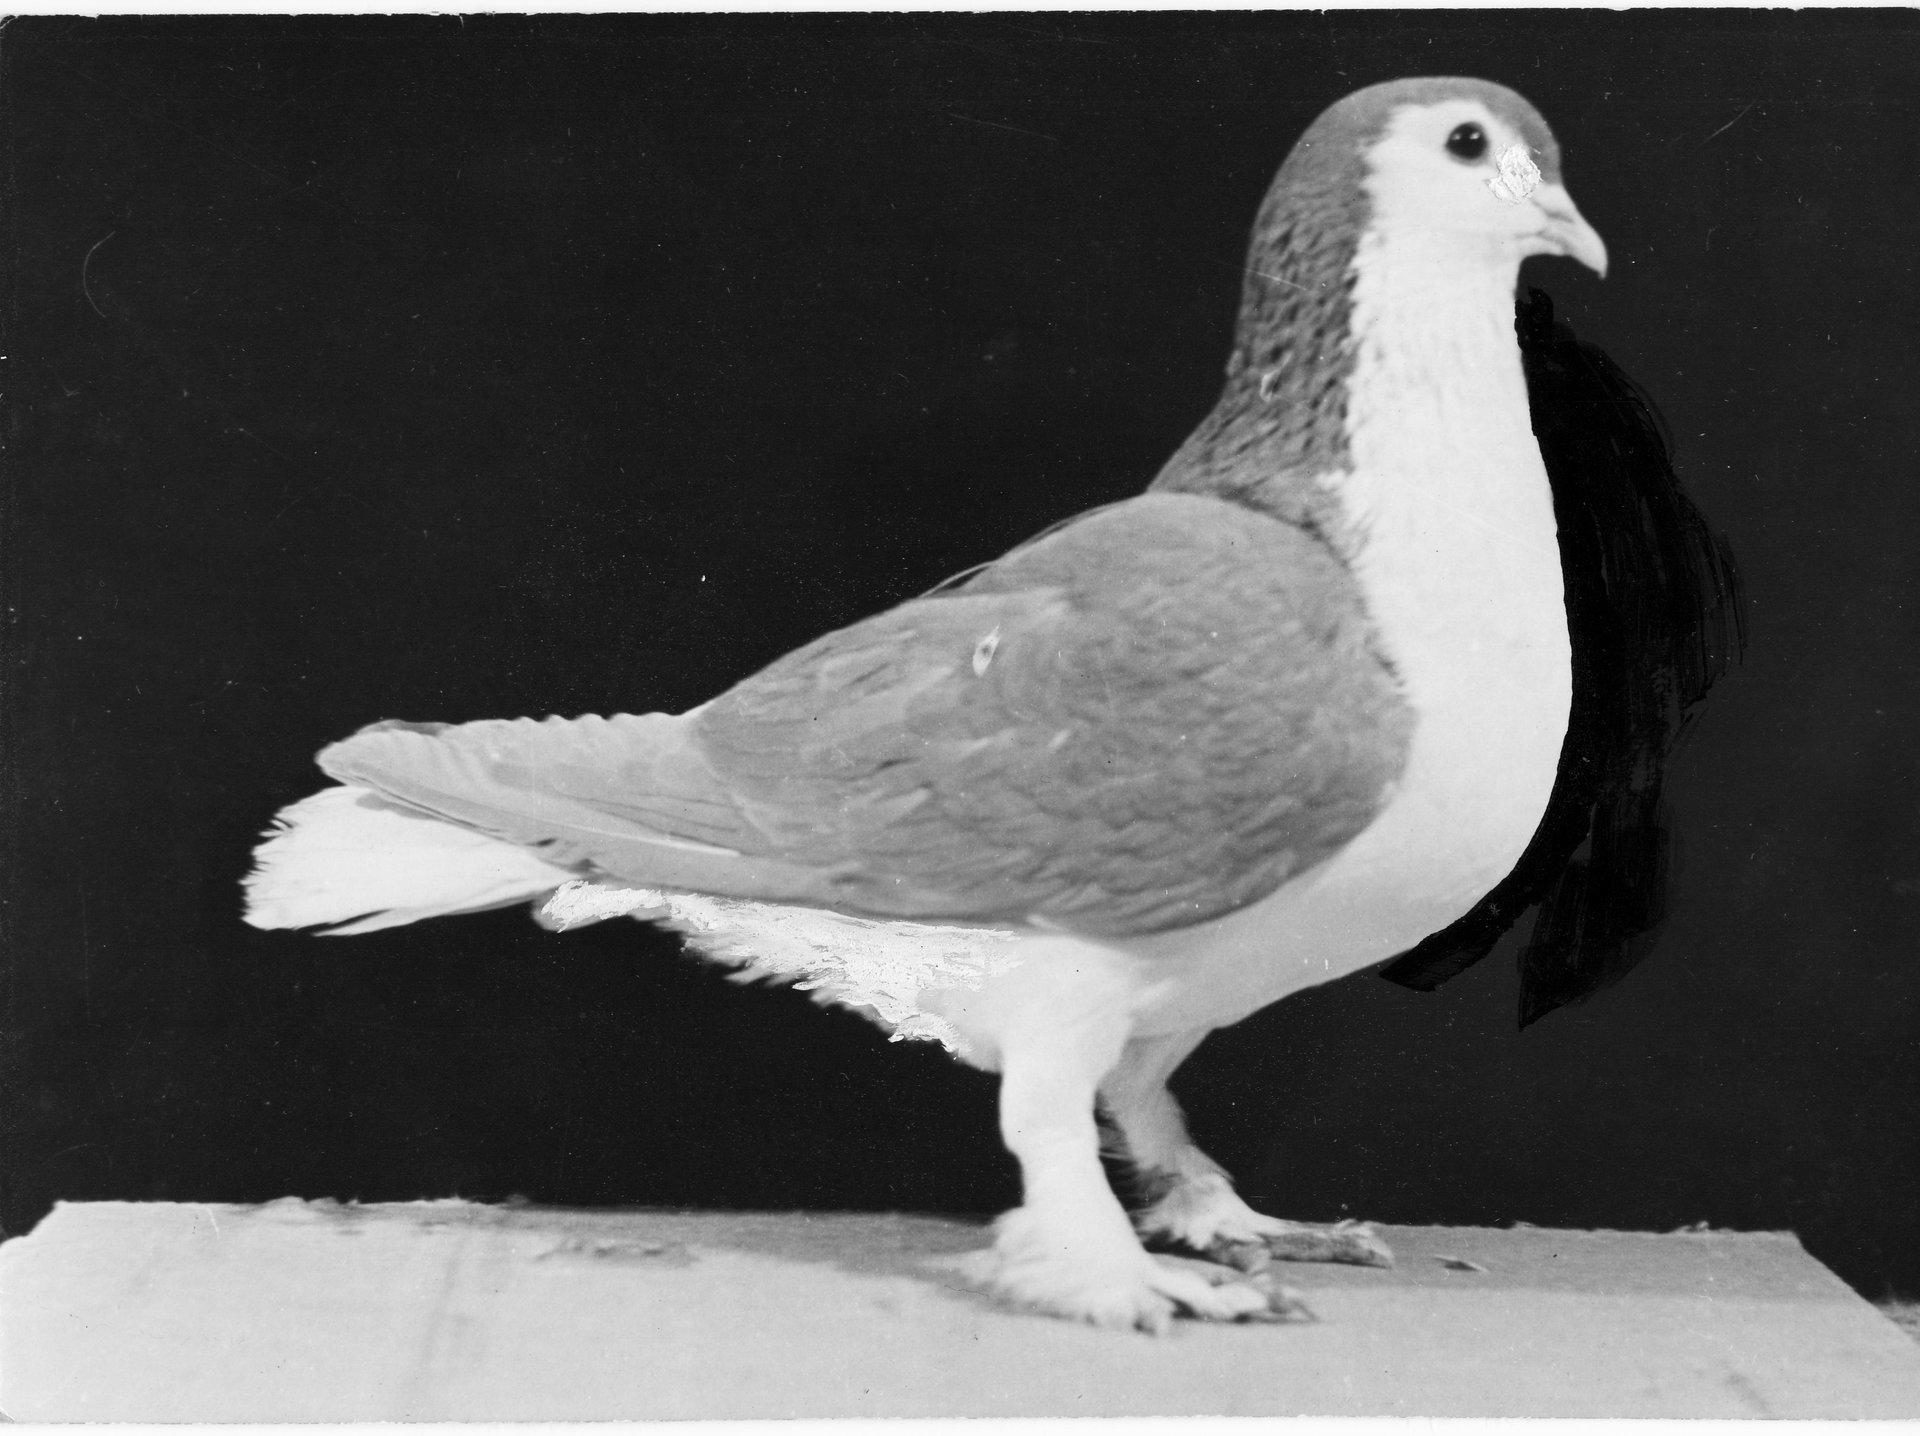 Petra Feriancová, Series Creator – From the Archive of O. Ferianc, New Breeds 1949-1952, 2008, (105/112)